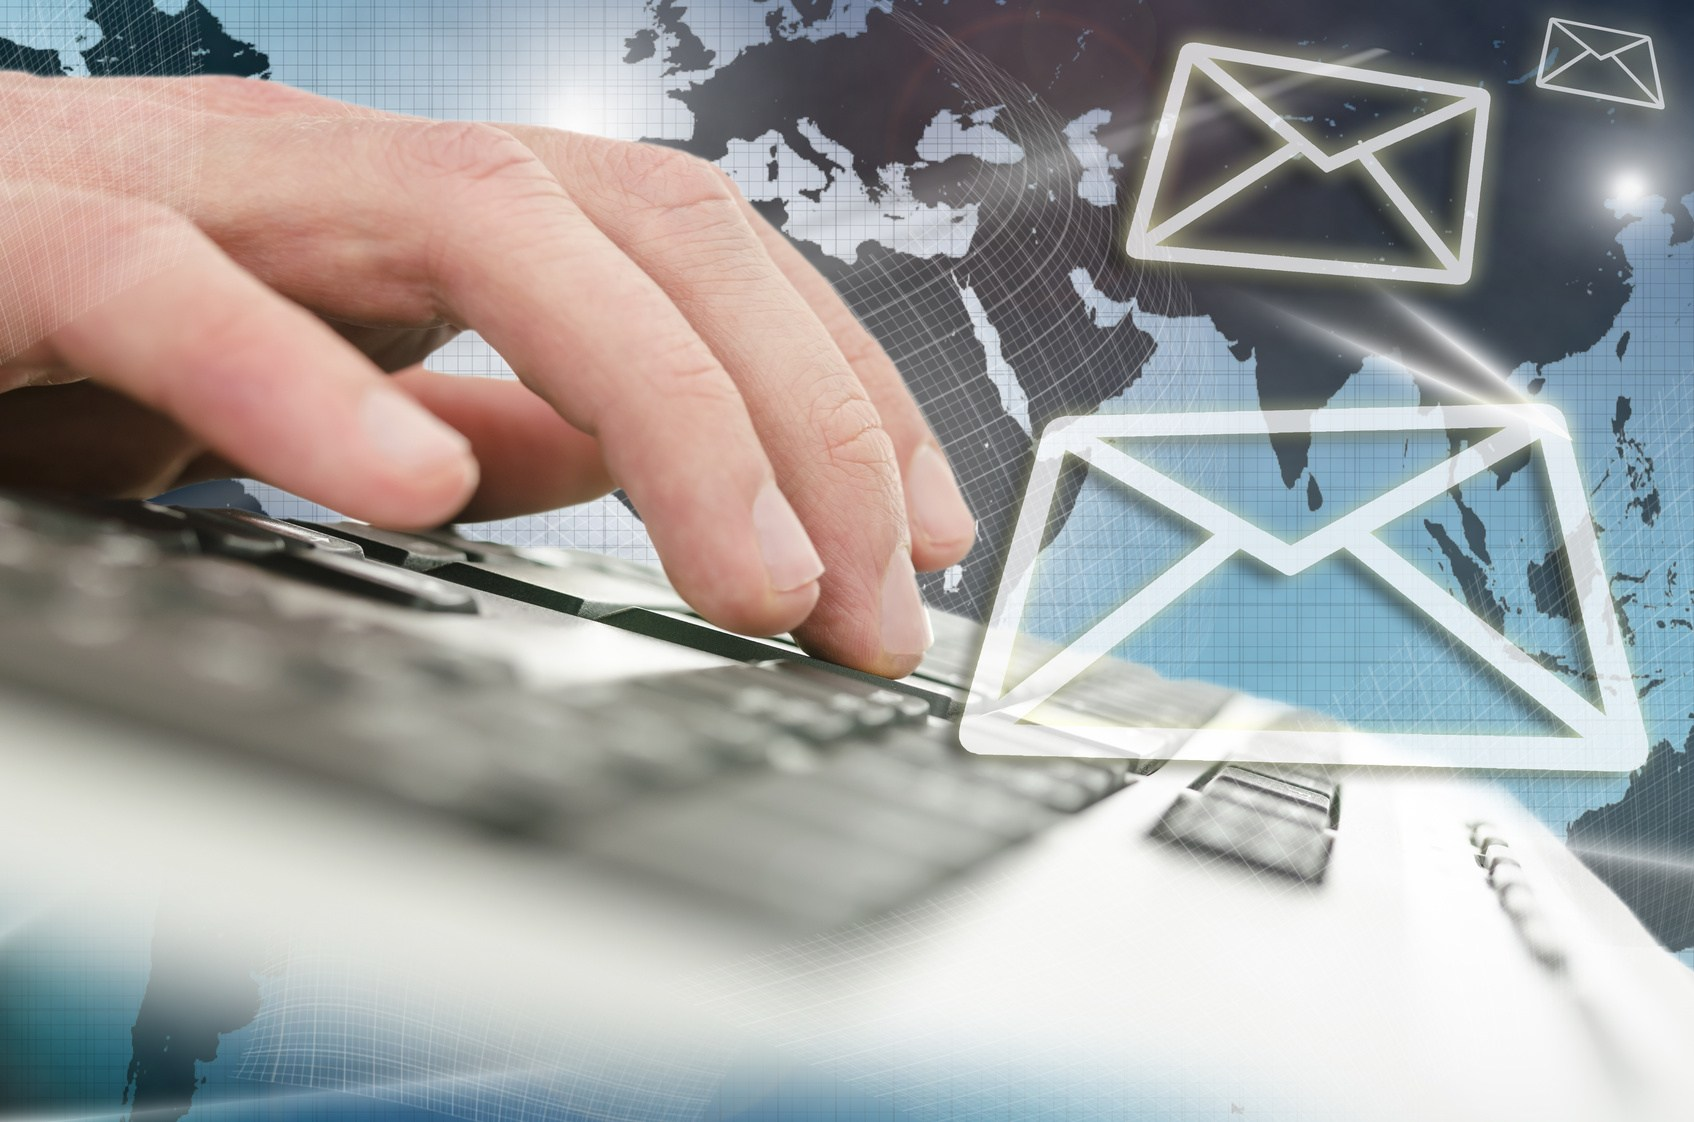 Emails are an efficient way to communicate, but not everyone regularly checks their emails, or pays attention to corporate notices.